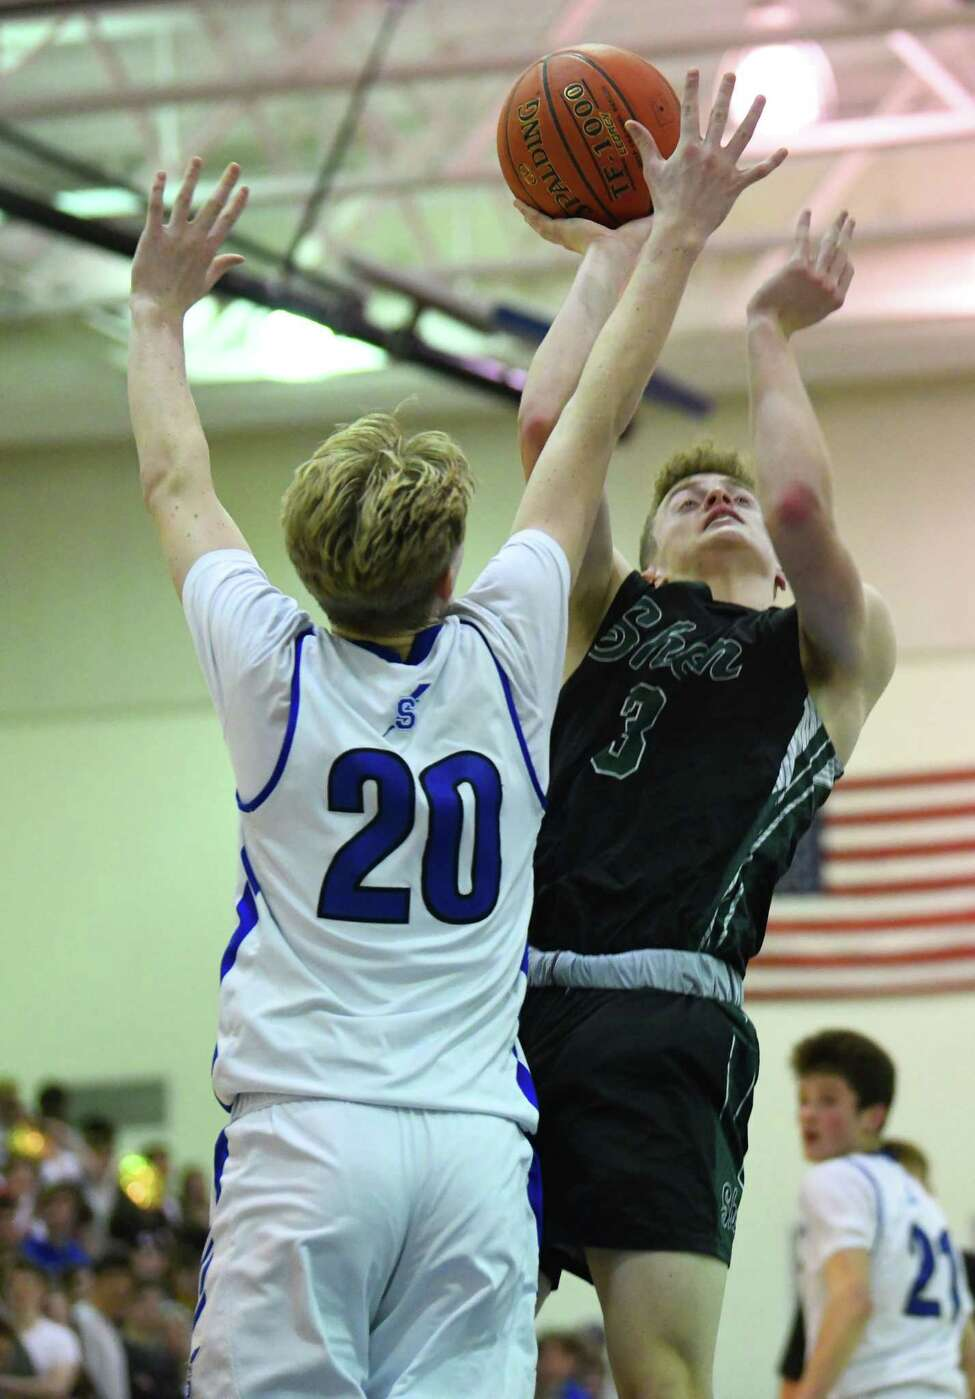 Shenendehowa's Luke Lavery drives to the basket against Saratoga's Luke Britton during a game on Tuesday, Feb. 11, 2020 in Saratoga Springs, N.Y. (Lori Van Buren/Times Union)